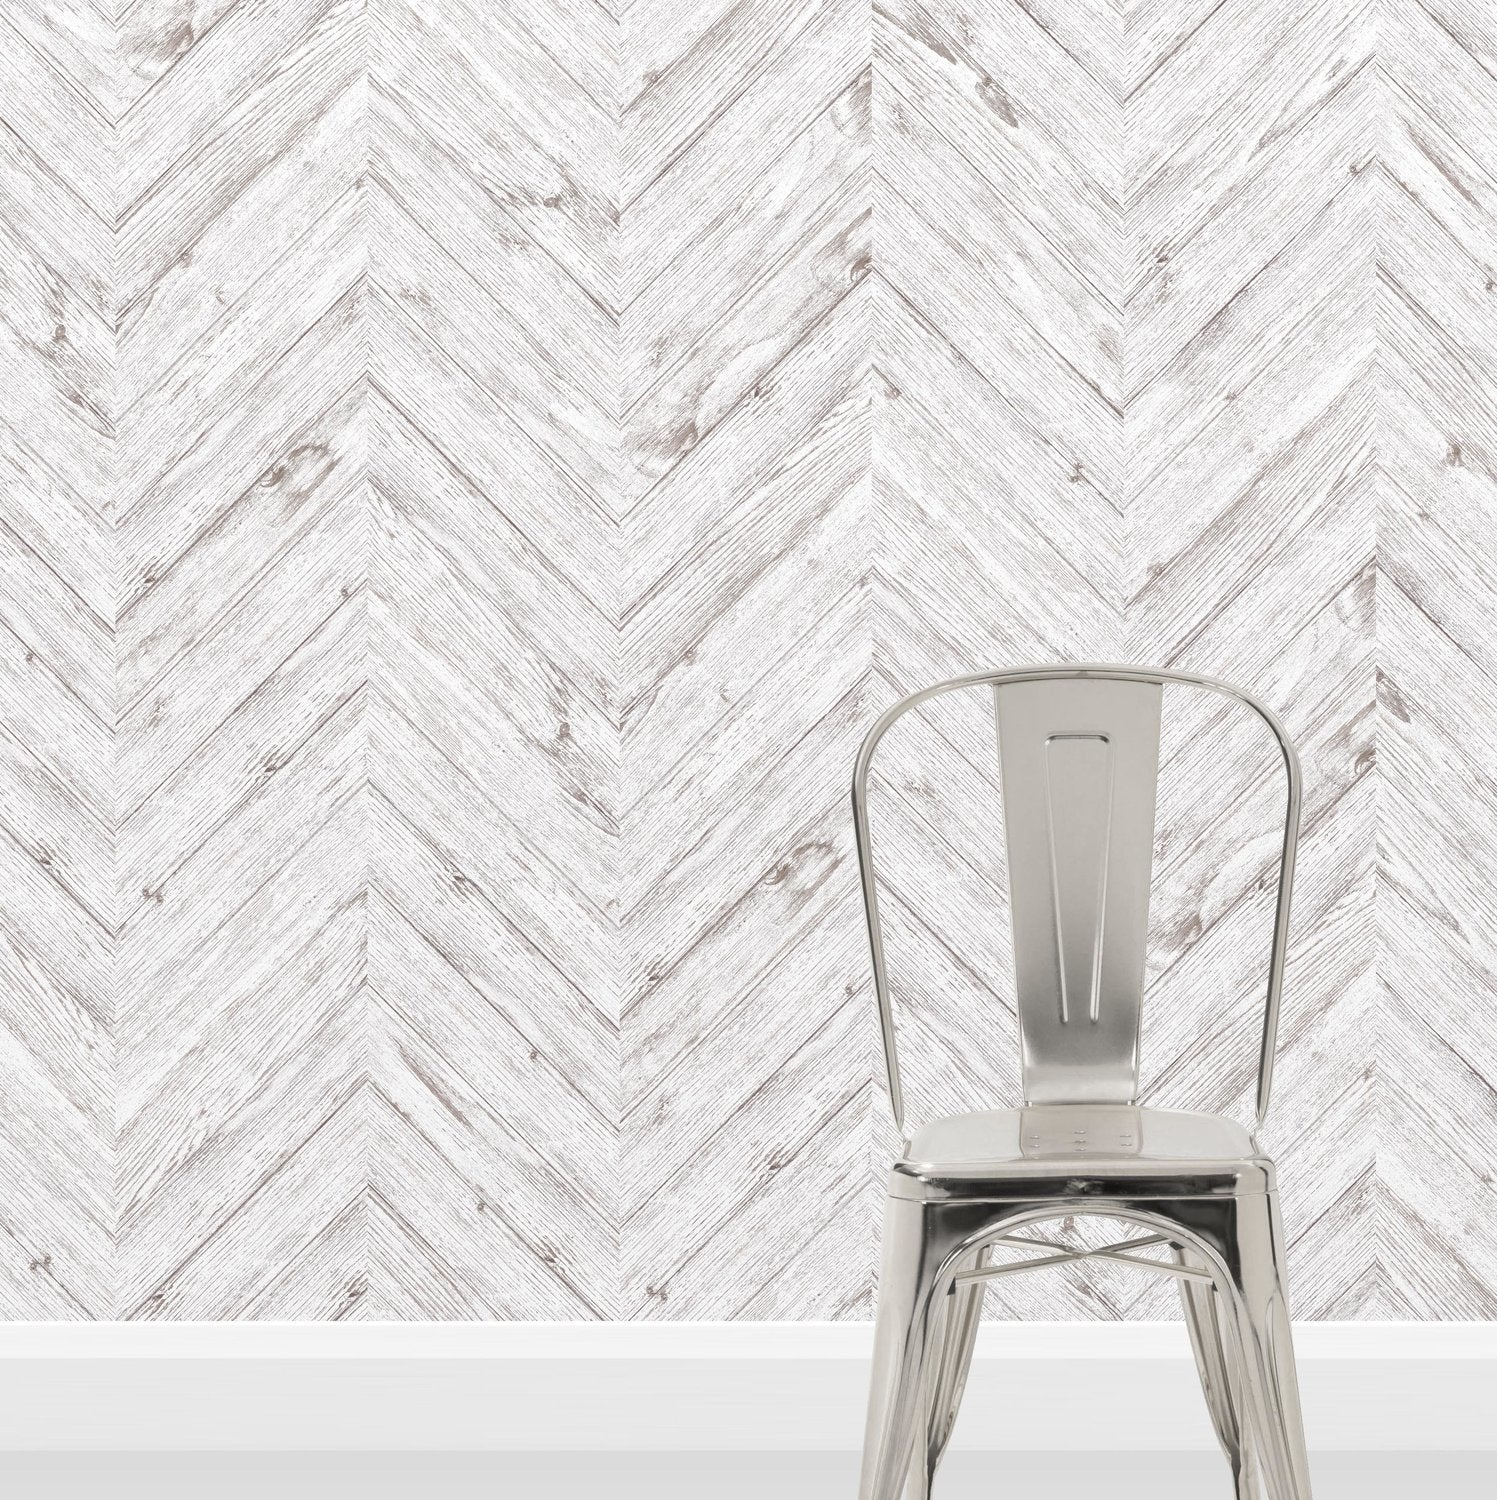 Scandi Herringbone White Washed Wood Effect Wallpaper